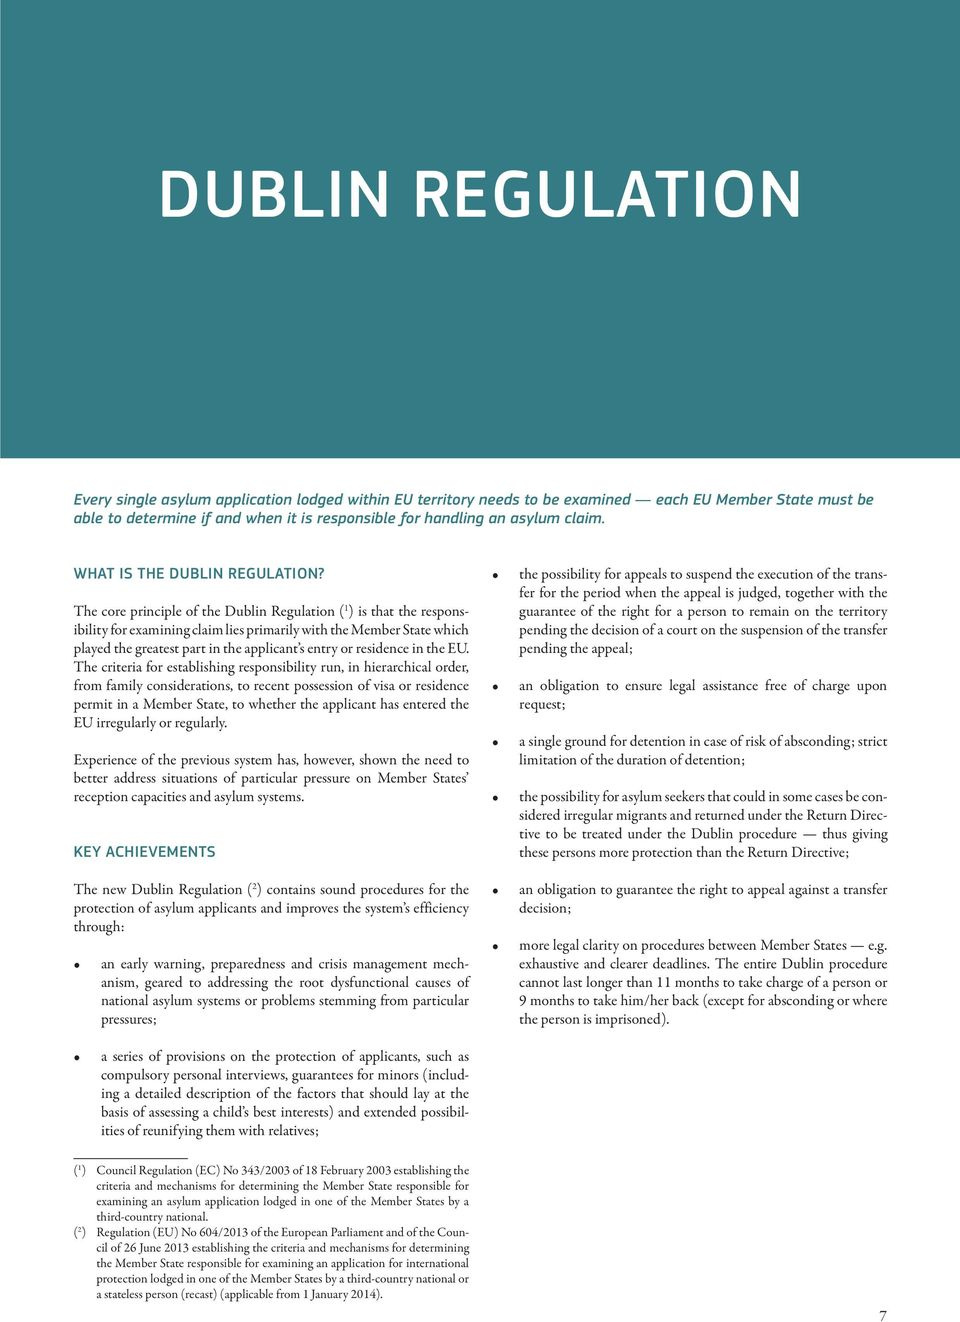 The core principle of the Dublin Regulation ( 1 ) is that the responsibility for examining claim lies primarily with the Member State which played the greatest part in the applicant s entry or